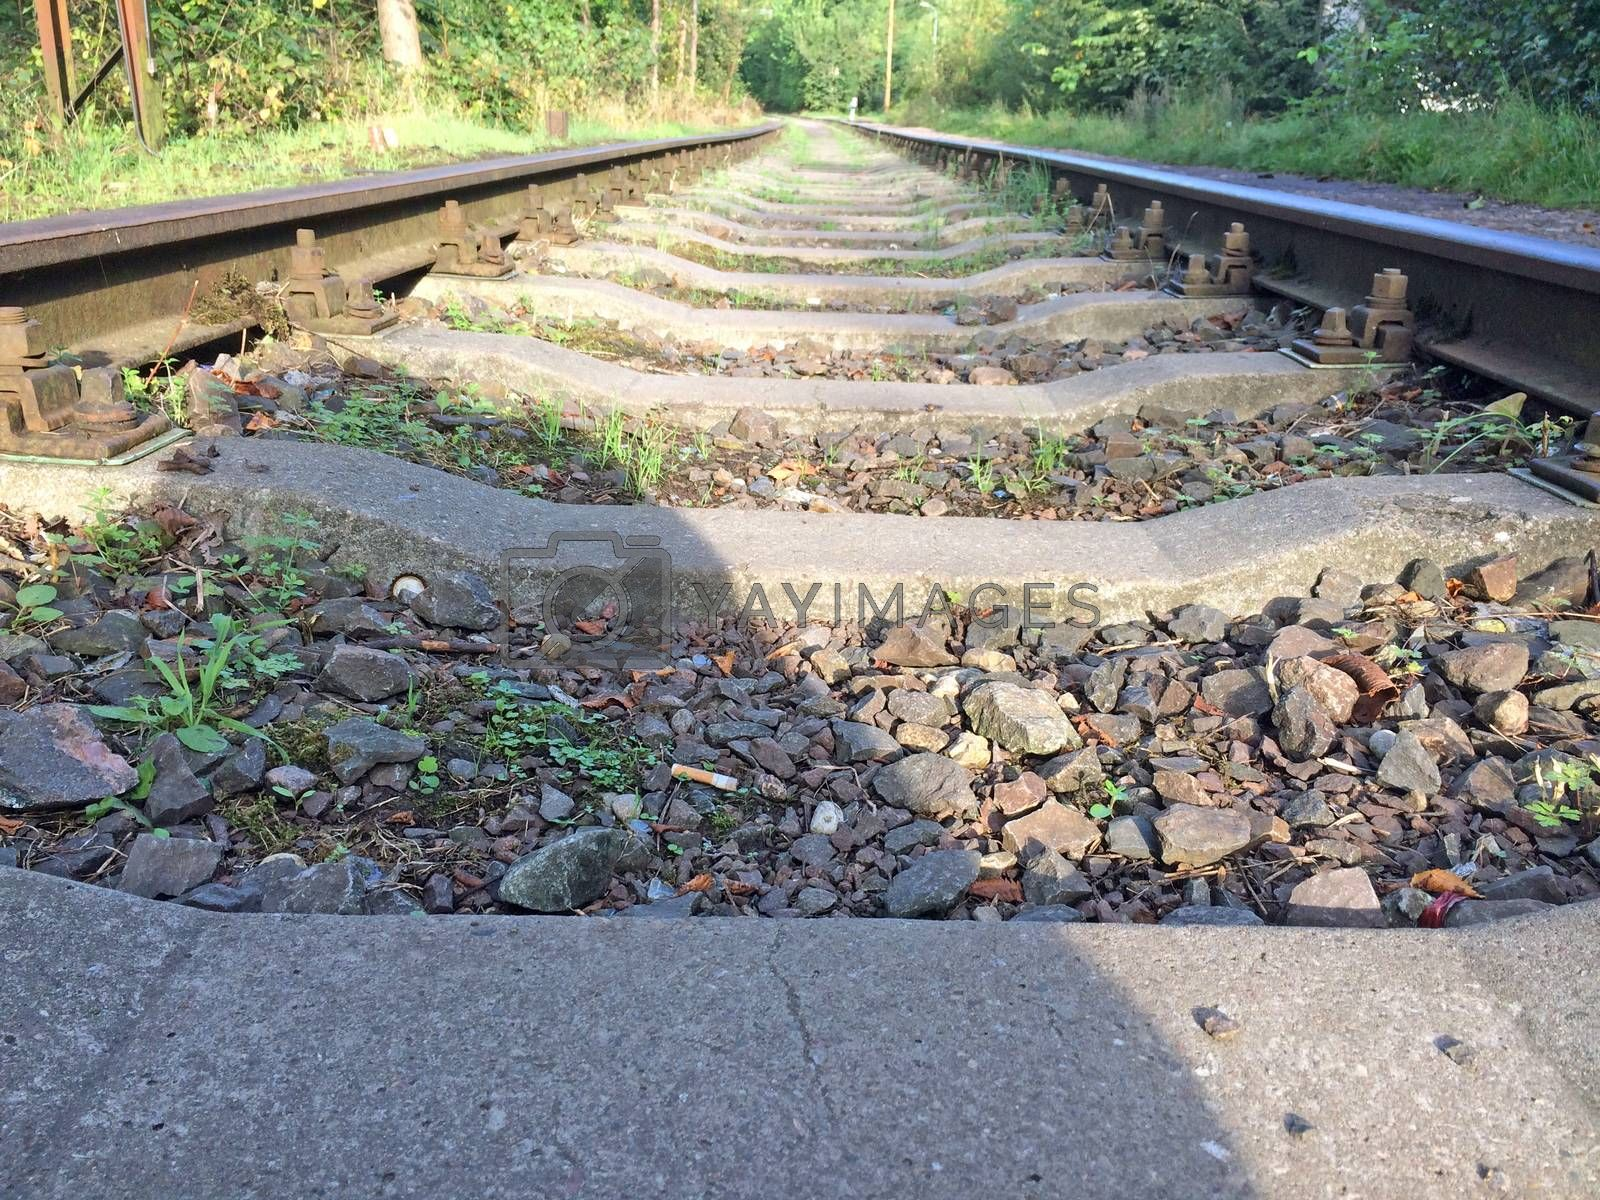 rails out of order by bremse